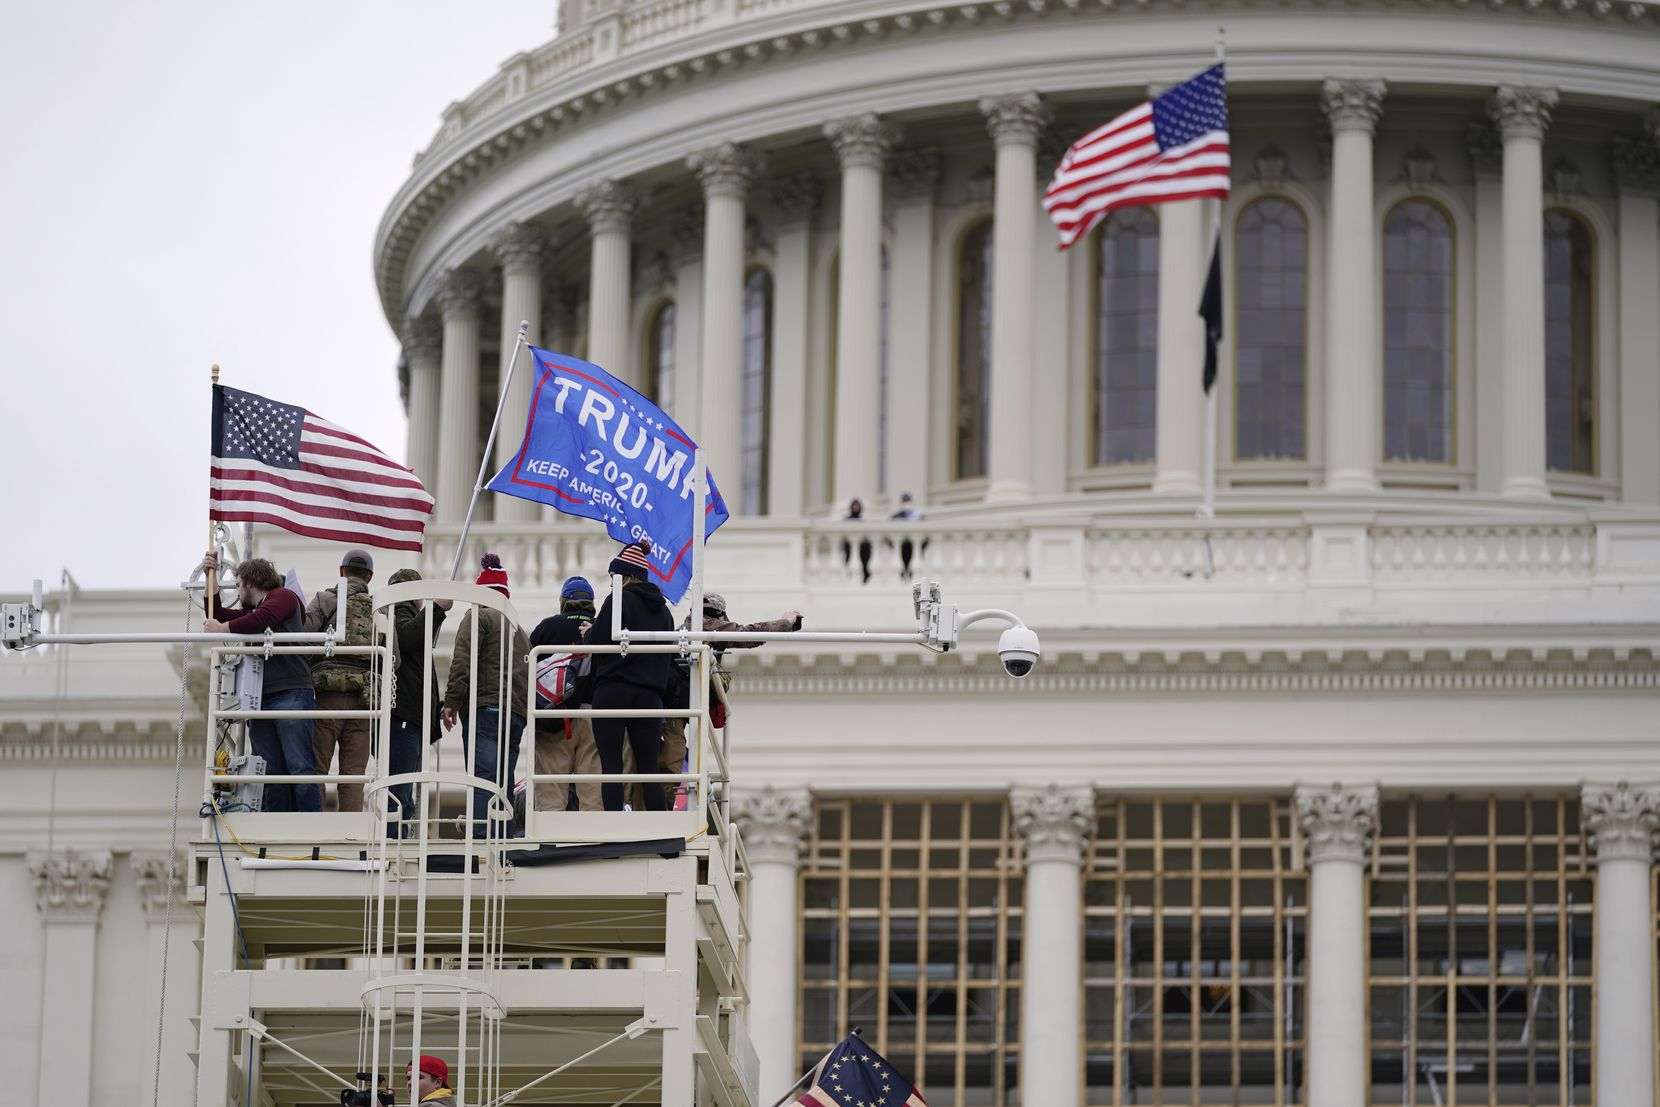 Trump supporters rally Wednesday, Jan. 6, 2021, at the Capitol in Washington. As Congress prepares to affirm President-elect Joe Biden's victory, thousands of people have gathered to show their support for President Donald Trump and his claims of election fraud.